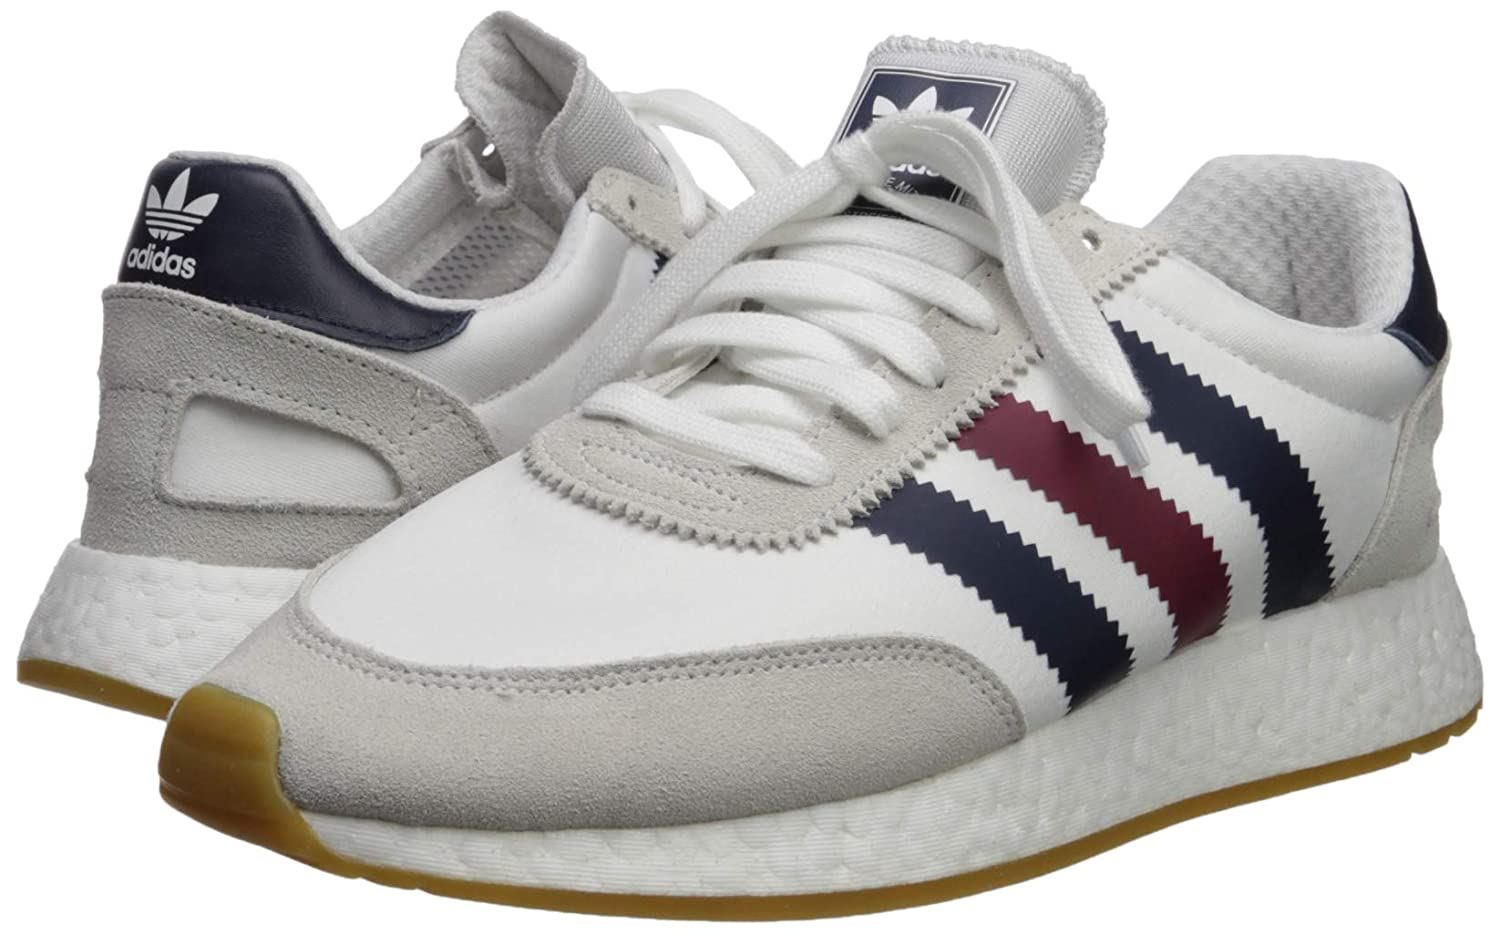 adidas Originals Men's I 5923 Running Shoe, White BurgundyCollegiate Navy, 11.5 M US